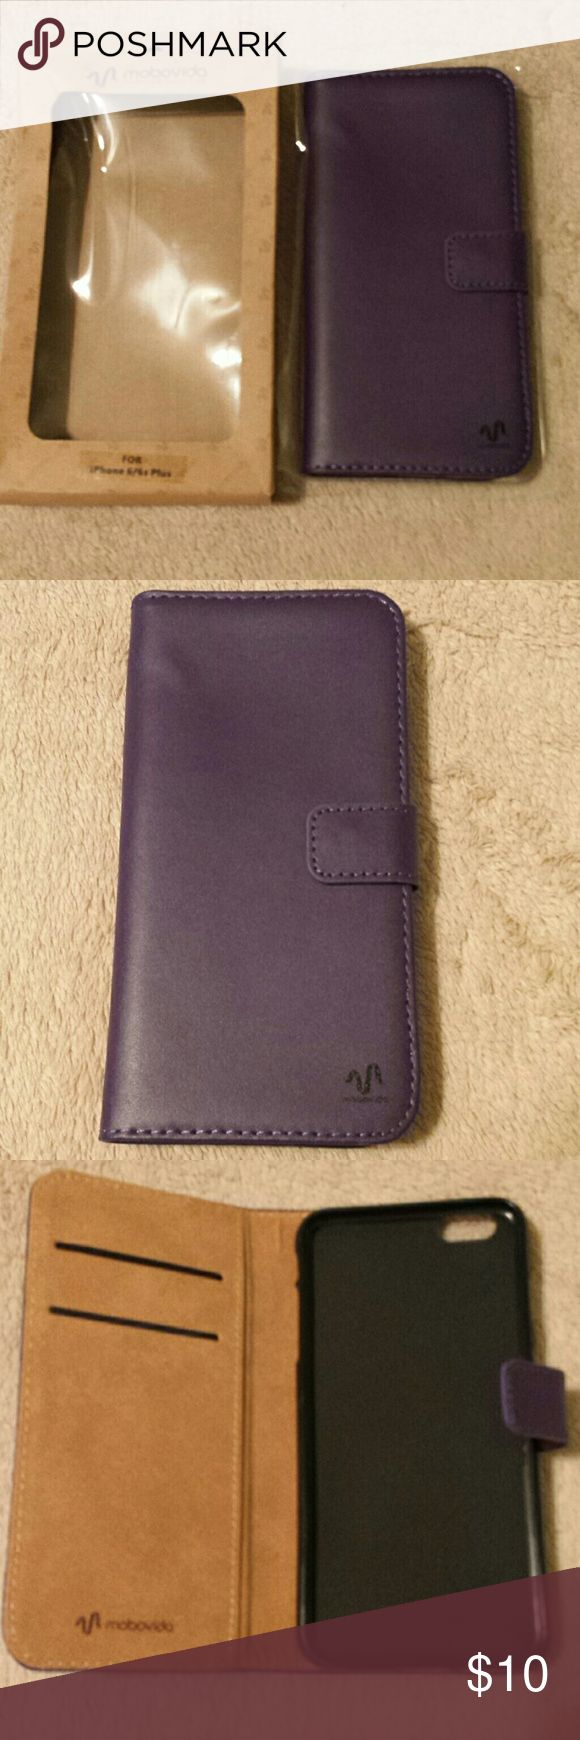 Purple Leather iPhone 6/6s Plus Wallet Case. New. Genuine leather folding wallet case for Apple iPhone 6/6s Plus. 2 inside card slots & interior compartment. Magnet closure. Precise cutouts for camera and ports. New in box. No tags. Accessories Phone Cases